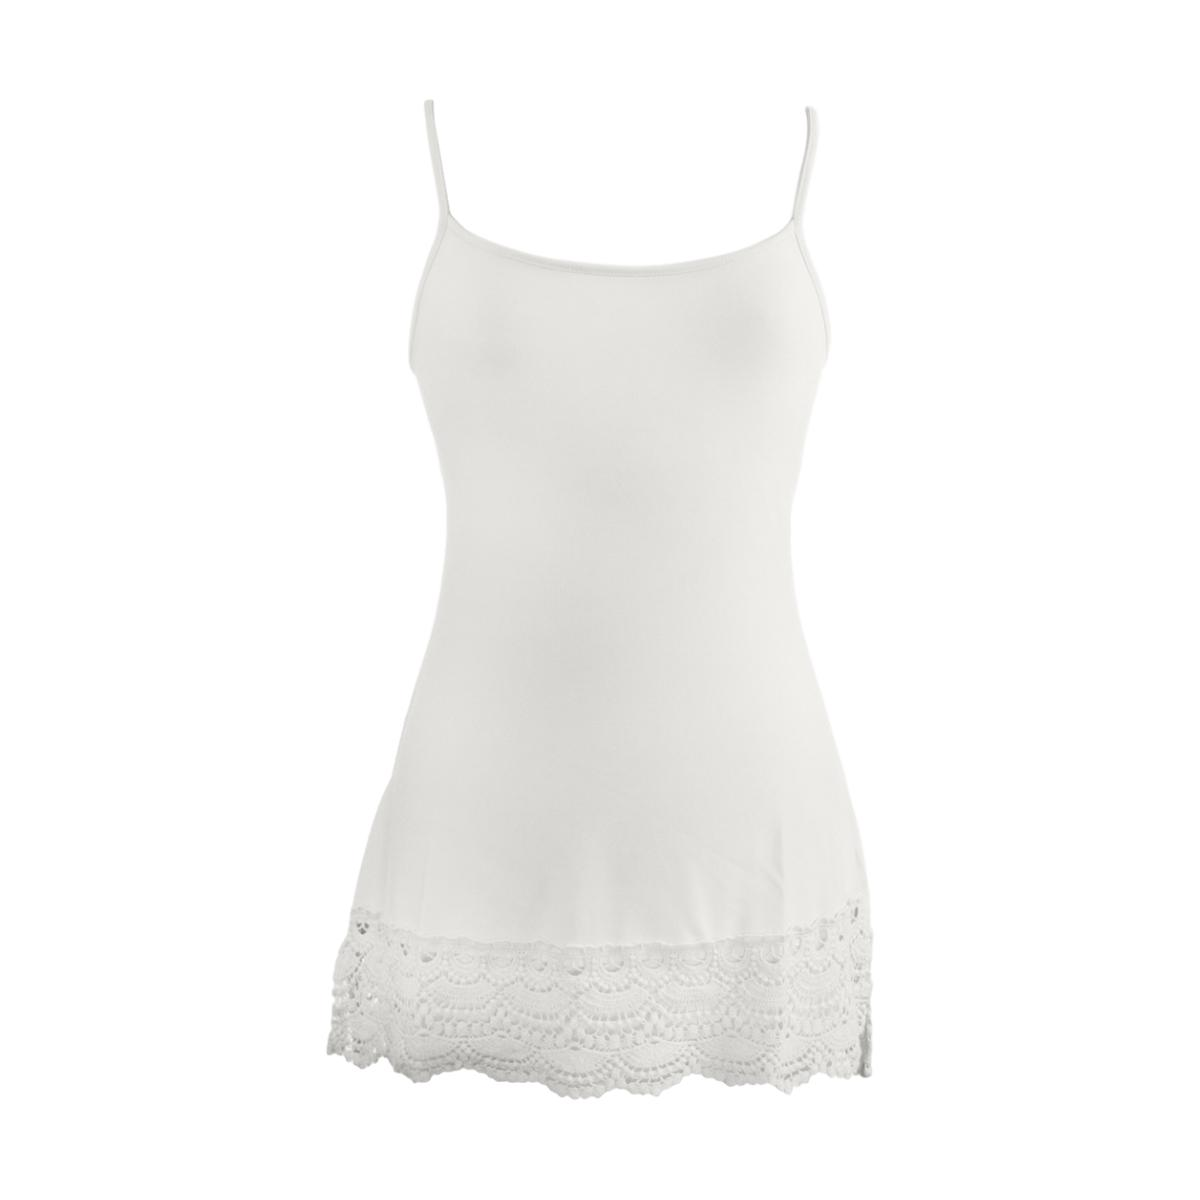 Foxglove Crochet Trim Top Extender | bleach white